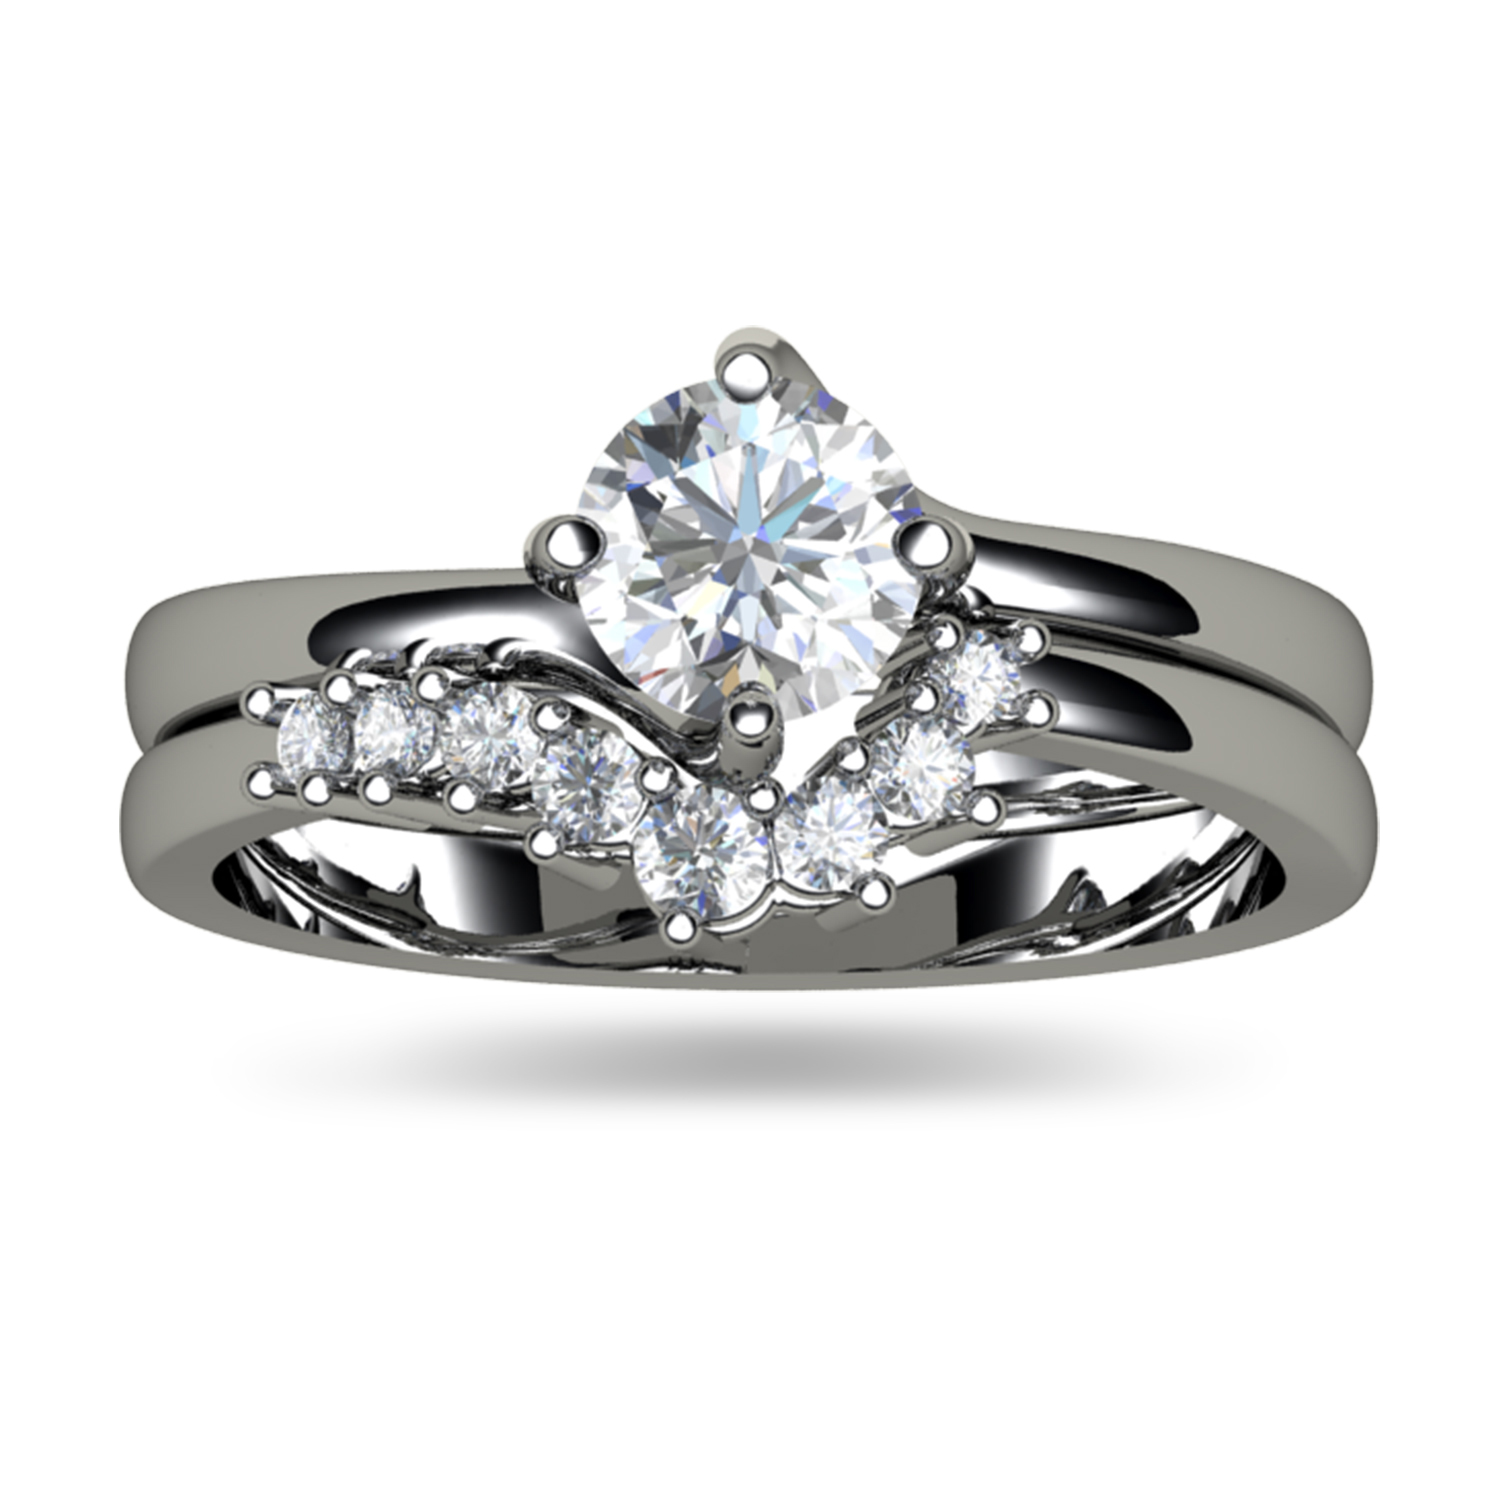 Round Brilliant Cut Diamond Half Set Fitted Wedding Ring And Engagement Ring